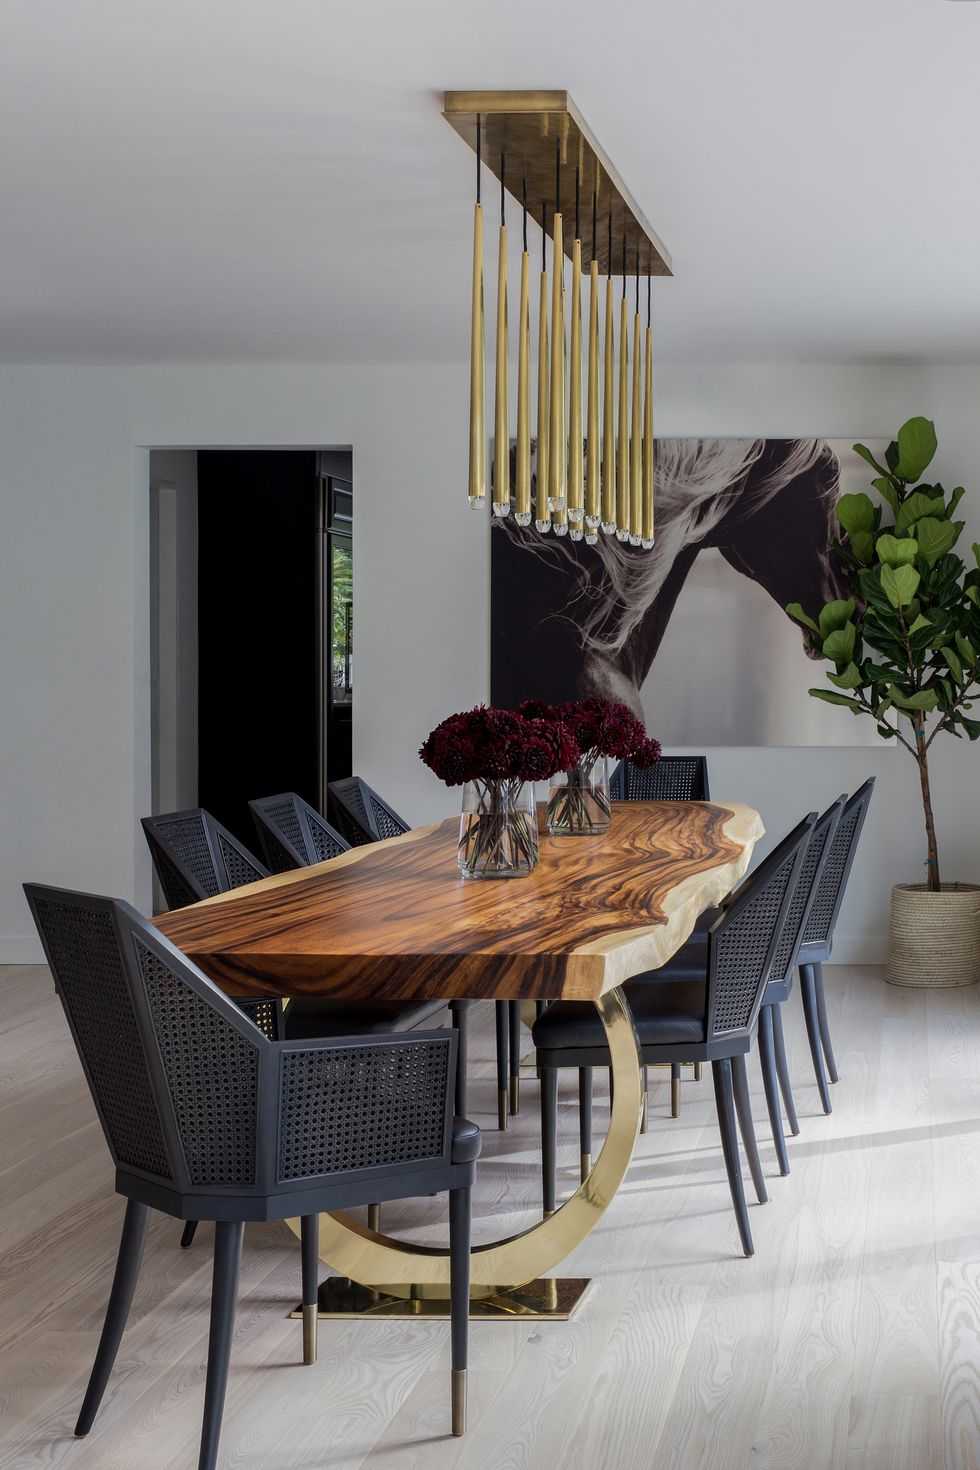 Usource-custom-furnishings-1582055531